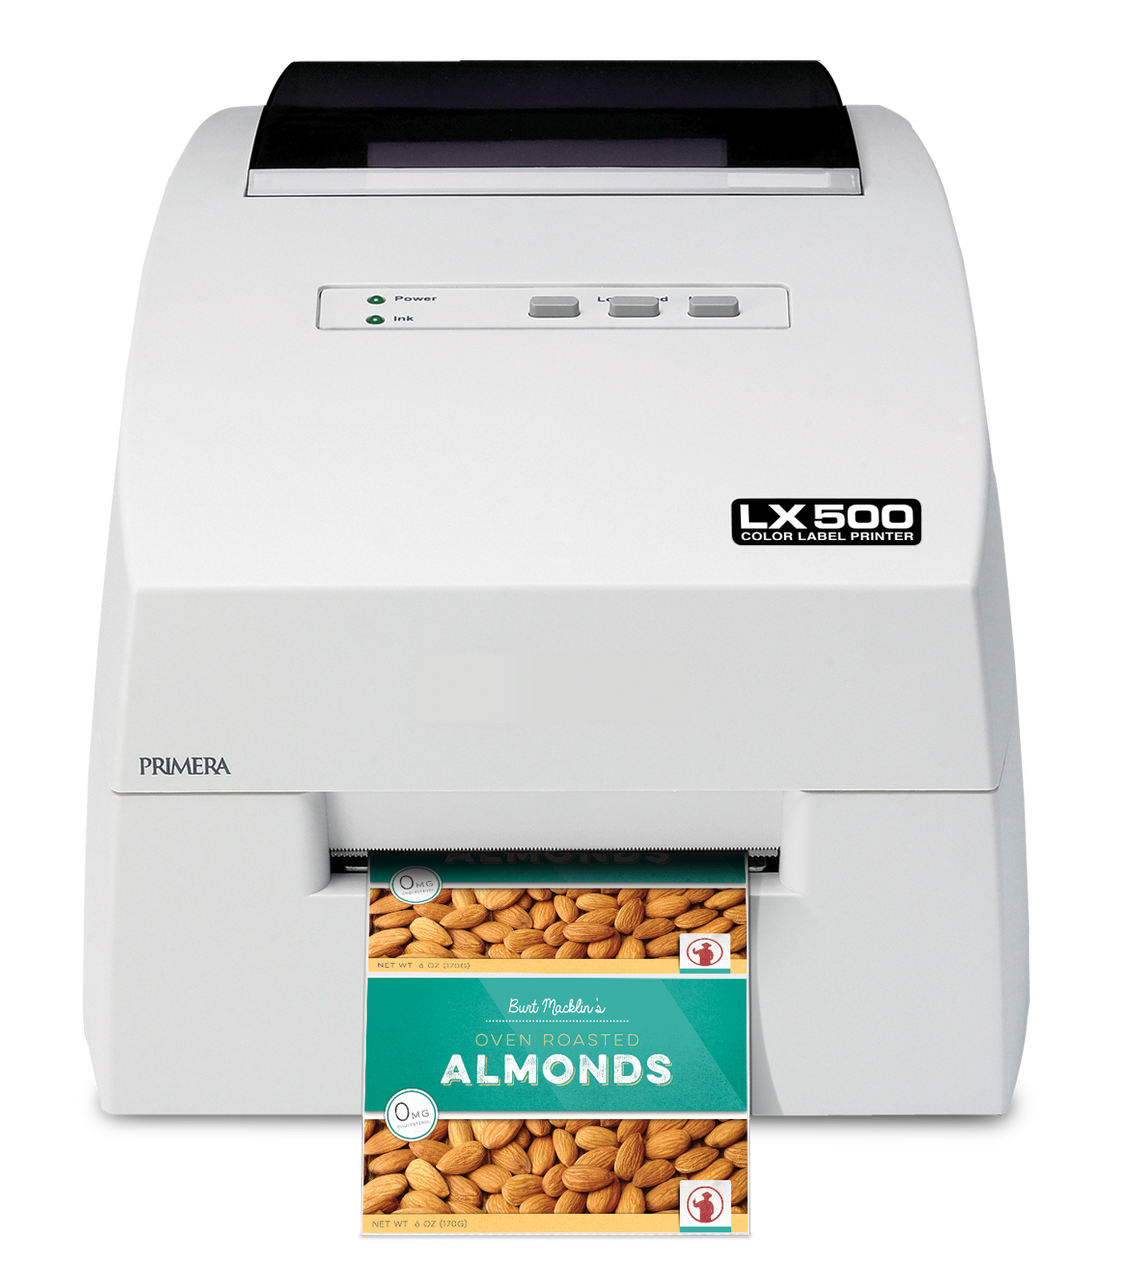 Primera LX500C Color Label Printer with cutter - 74275